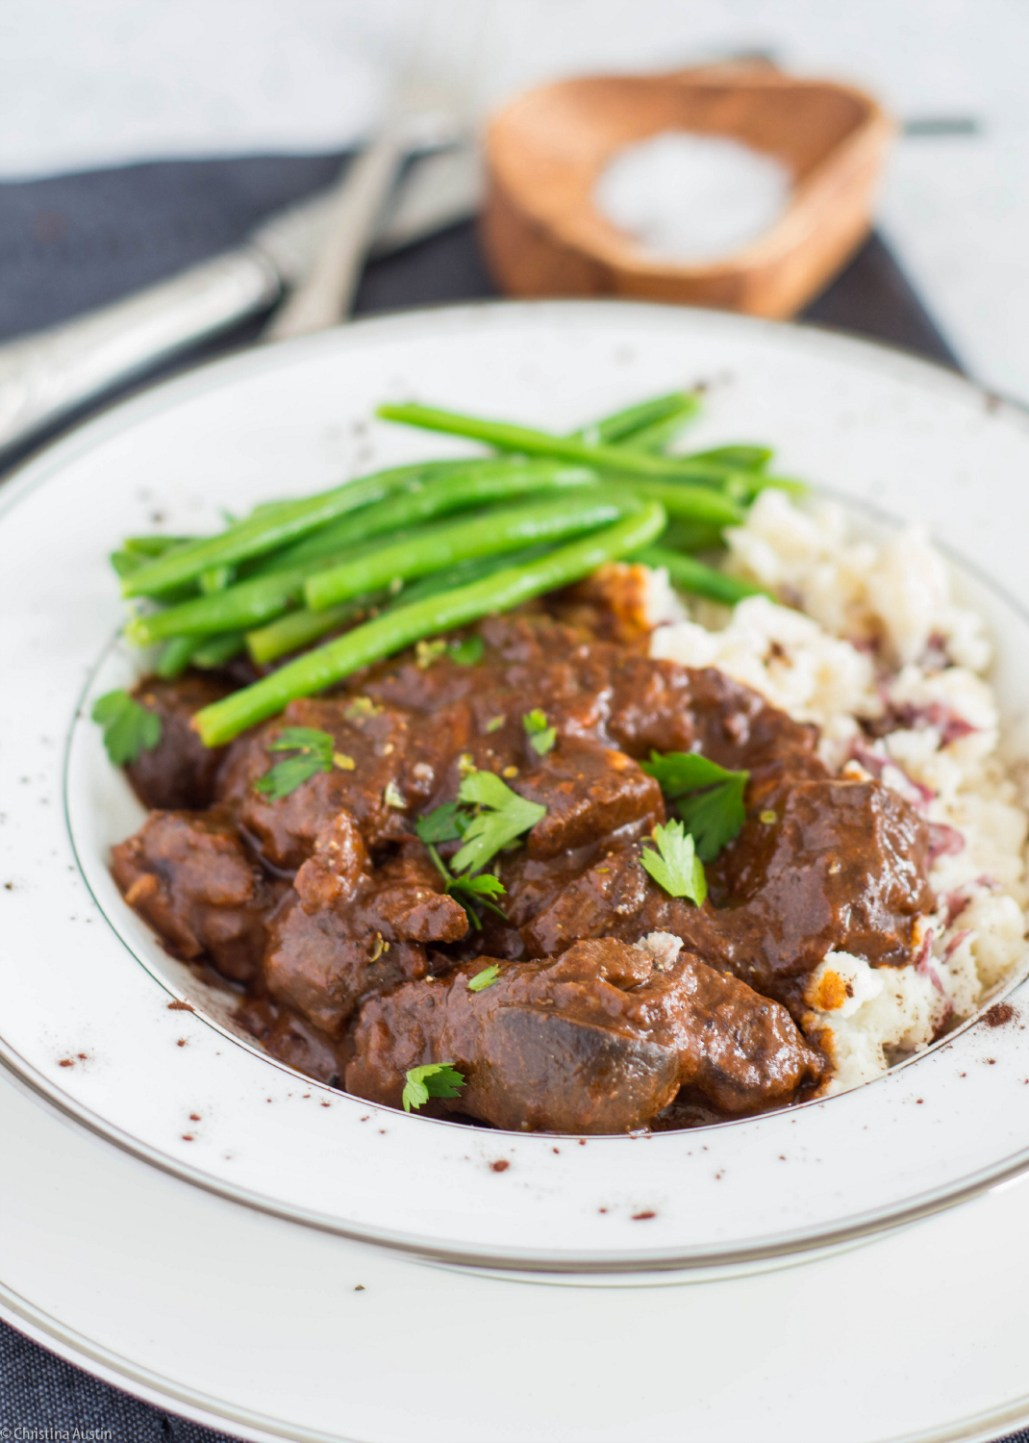 A rich beef and mushroom stew with traditional flavours, perked up with the savoury addition of cocoa powder.